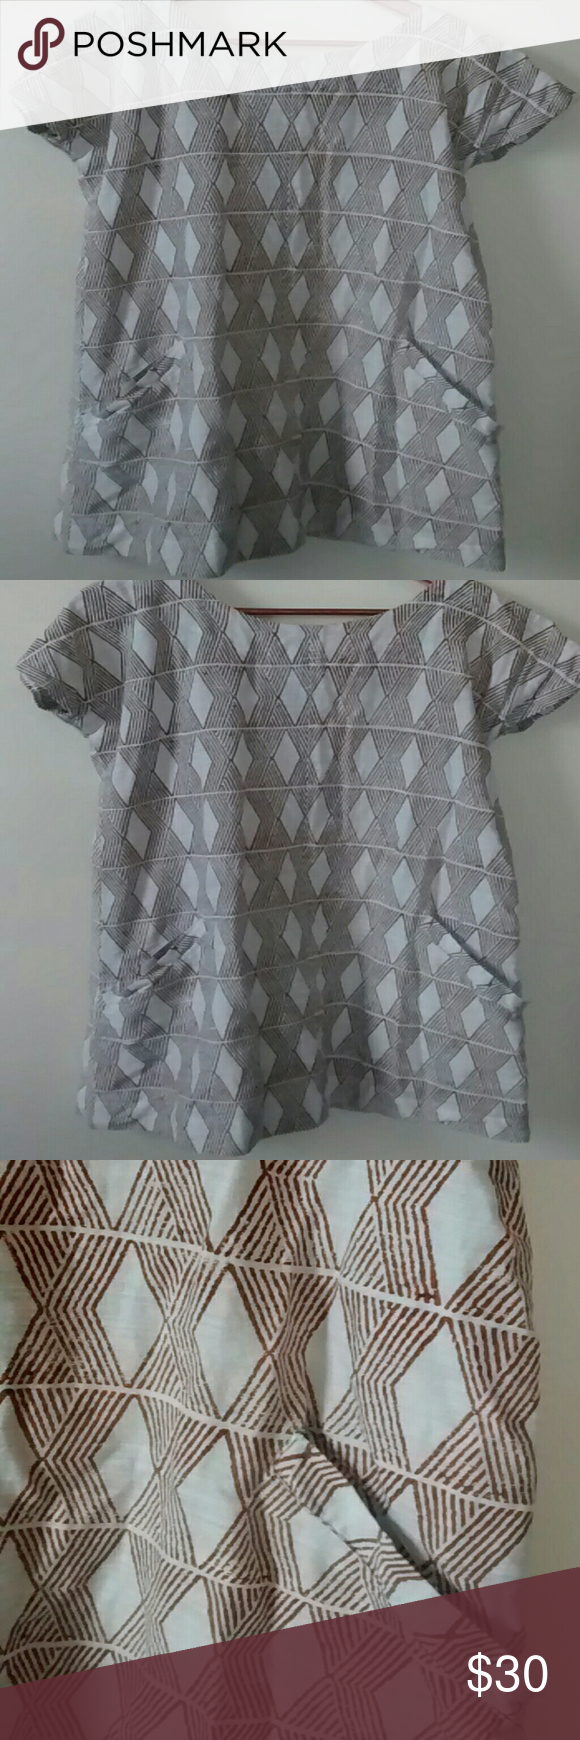 100% cotton tunic dress Fair trade from India, block printed 100% cotton tunic with side pockets and back zipper. Liz Alig  Dresses Mini